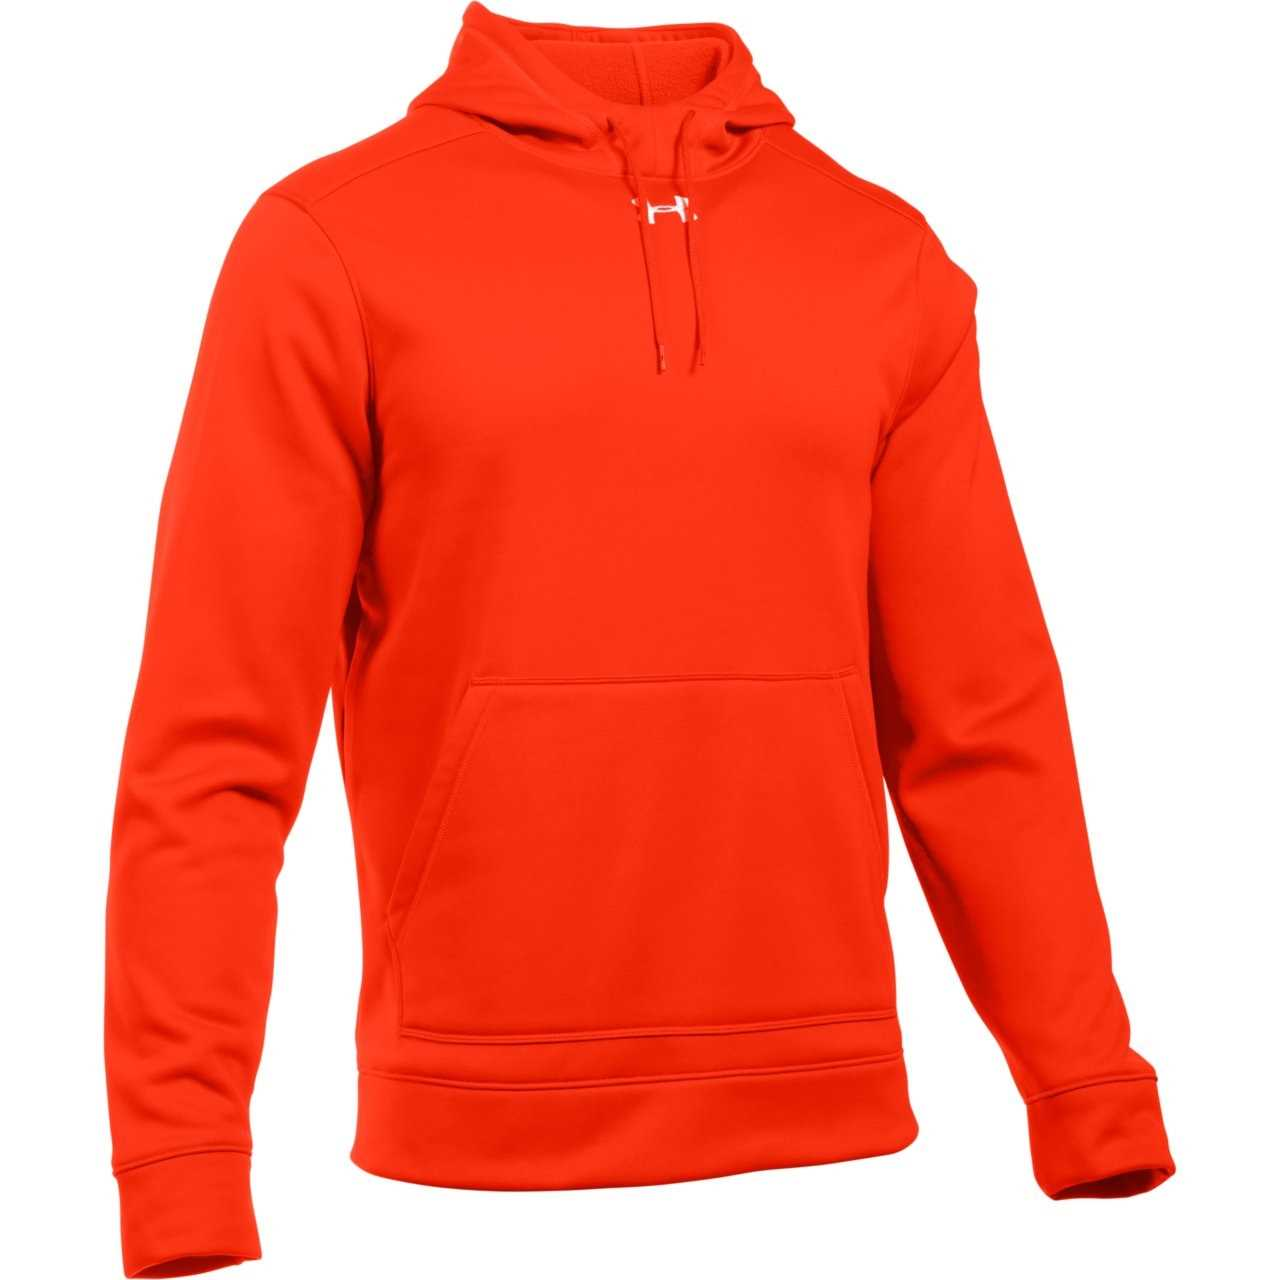 34ef1f0cf Under Armour Men's Storm Armour Fleece Hoodie - Dark Orange